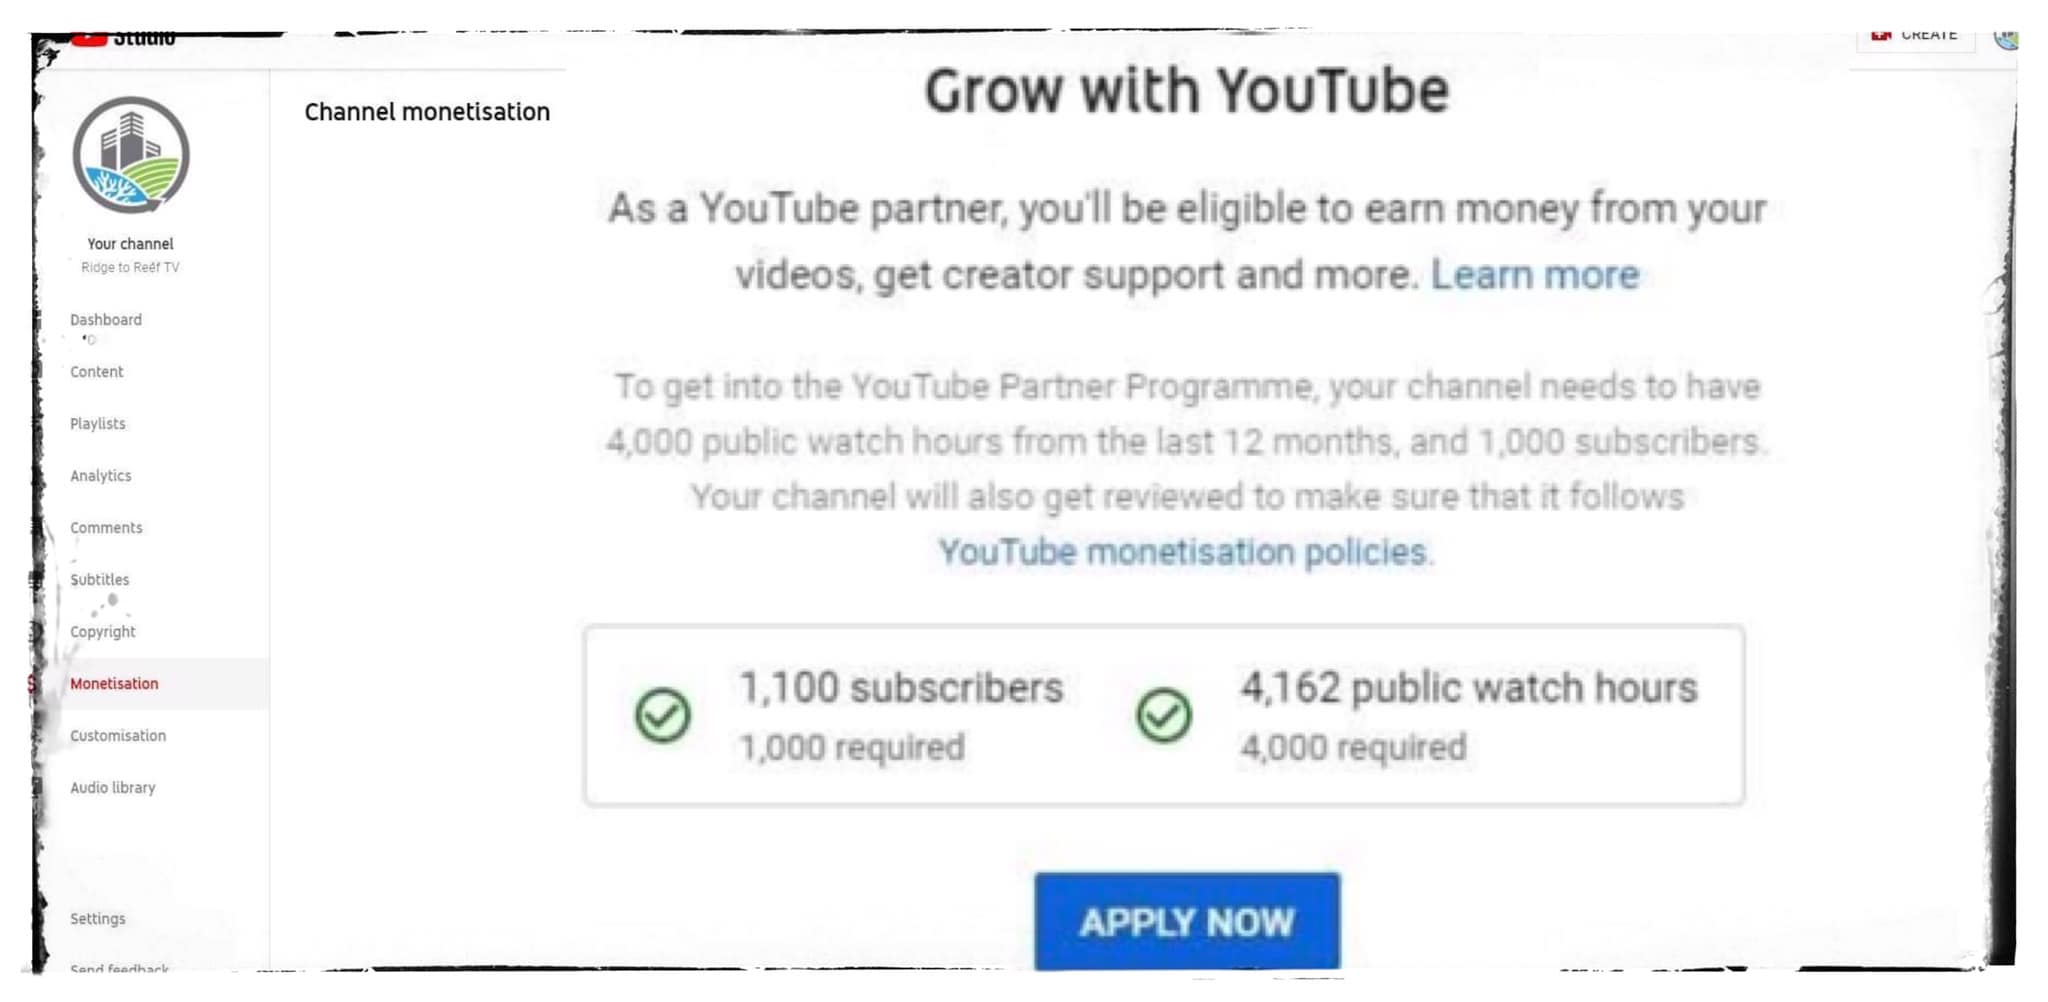 R2R Growing with You Tube